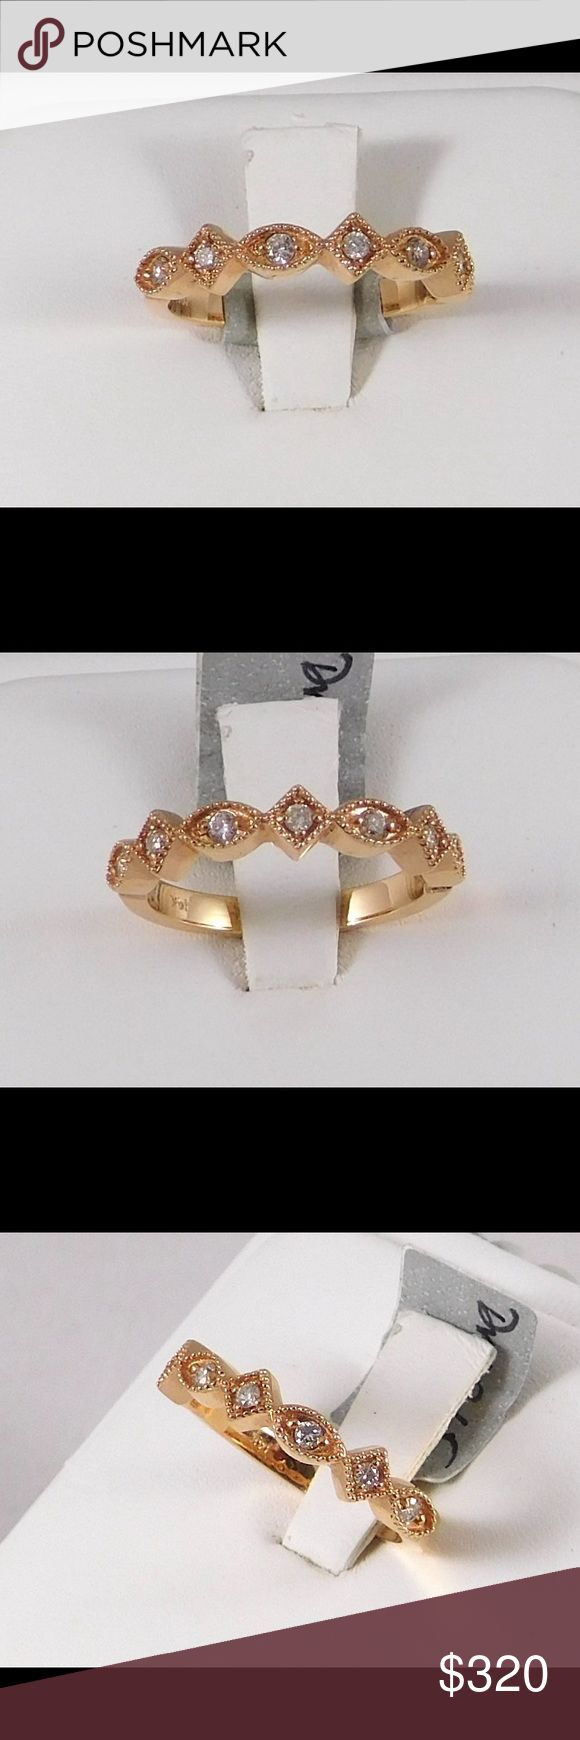 14k Rose Gold Stackable Ring Super cute stackable 14k rose gold ring. Also available in yellow and white gold. With 0.15 carats of G/SI1 diamonds. The gold is cut into marquis and diamond shapes with filigree detailing. Looks amazing when stacked with the yellow and white gold. Get all three Jewelry Rings